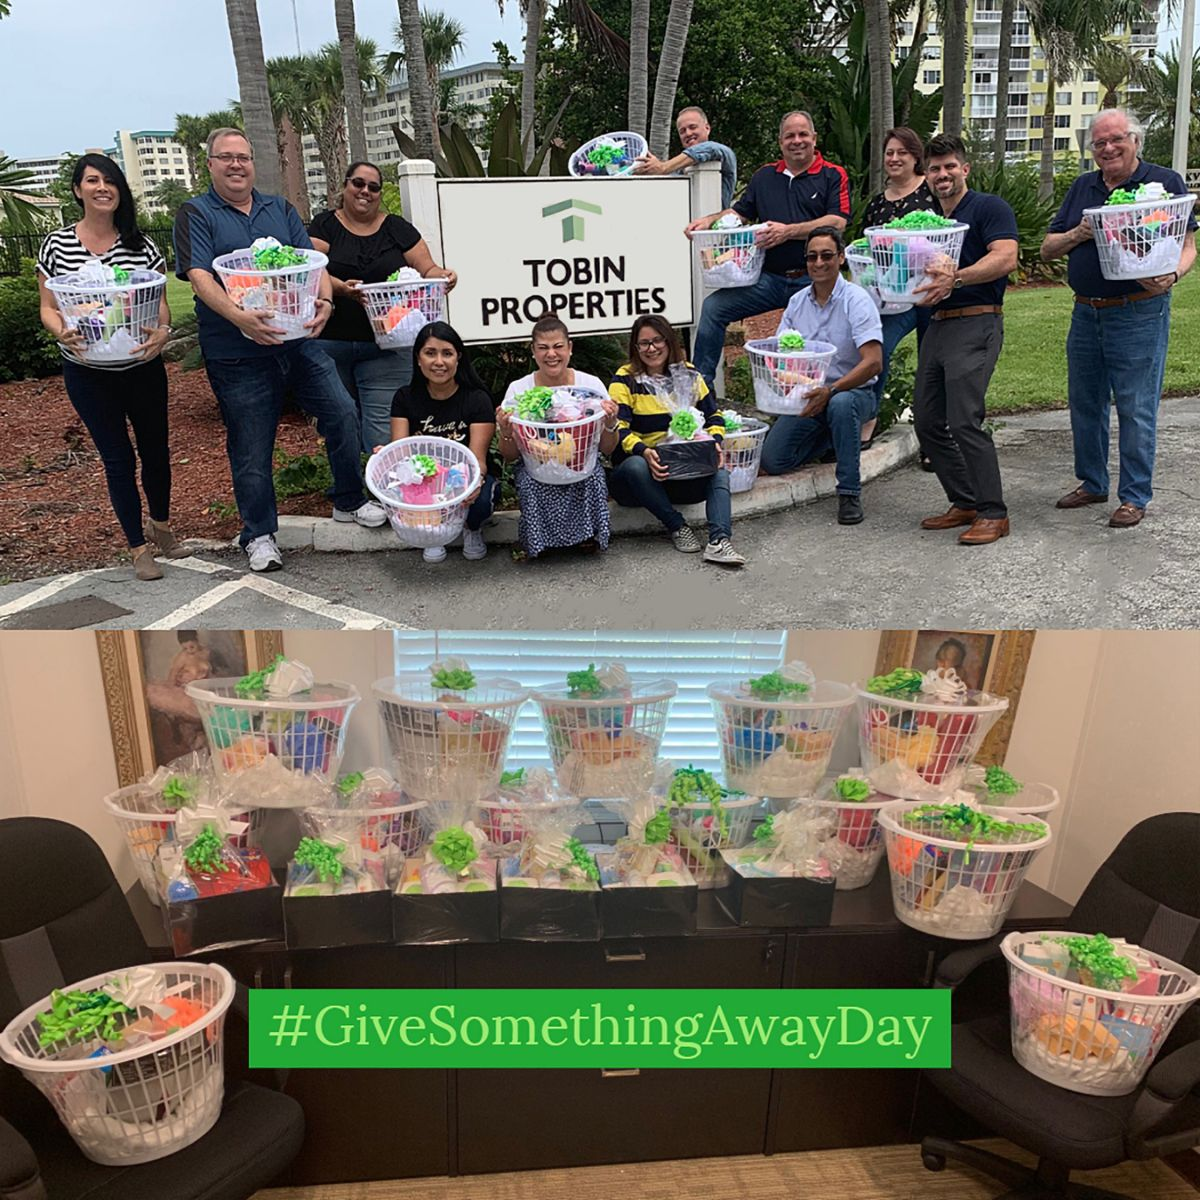 Tobin Team participated in making hygiene baskets for the local family shelter on #GiveSomethingAwayDay 2019.